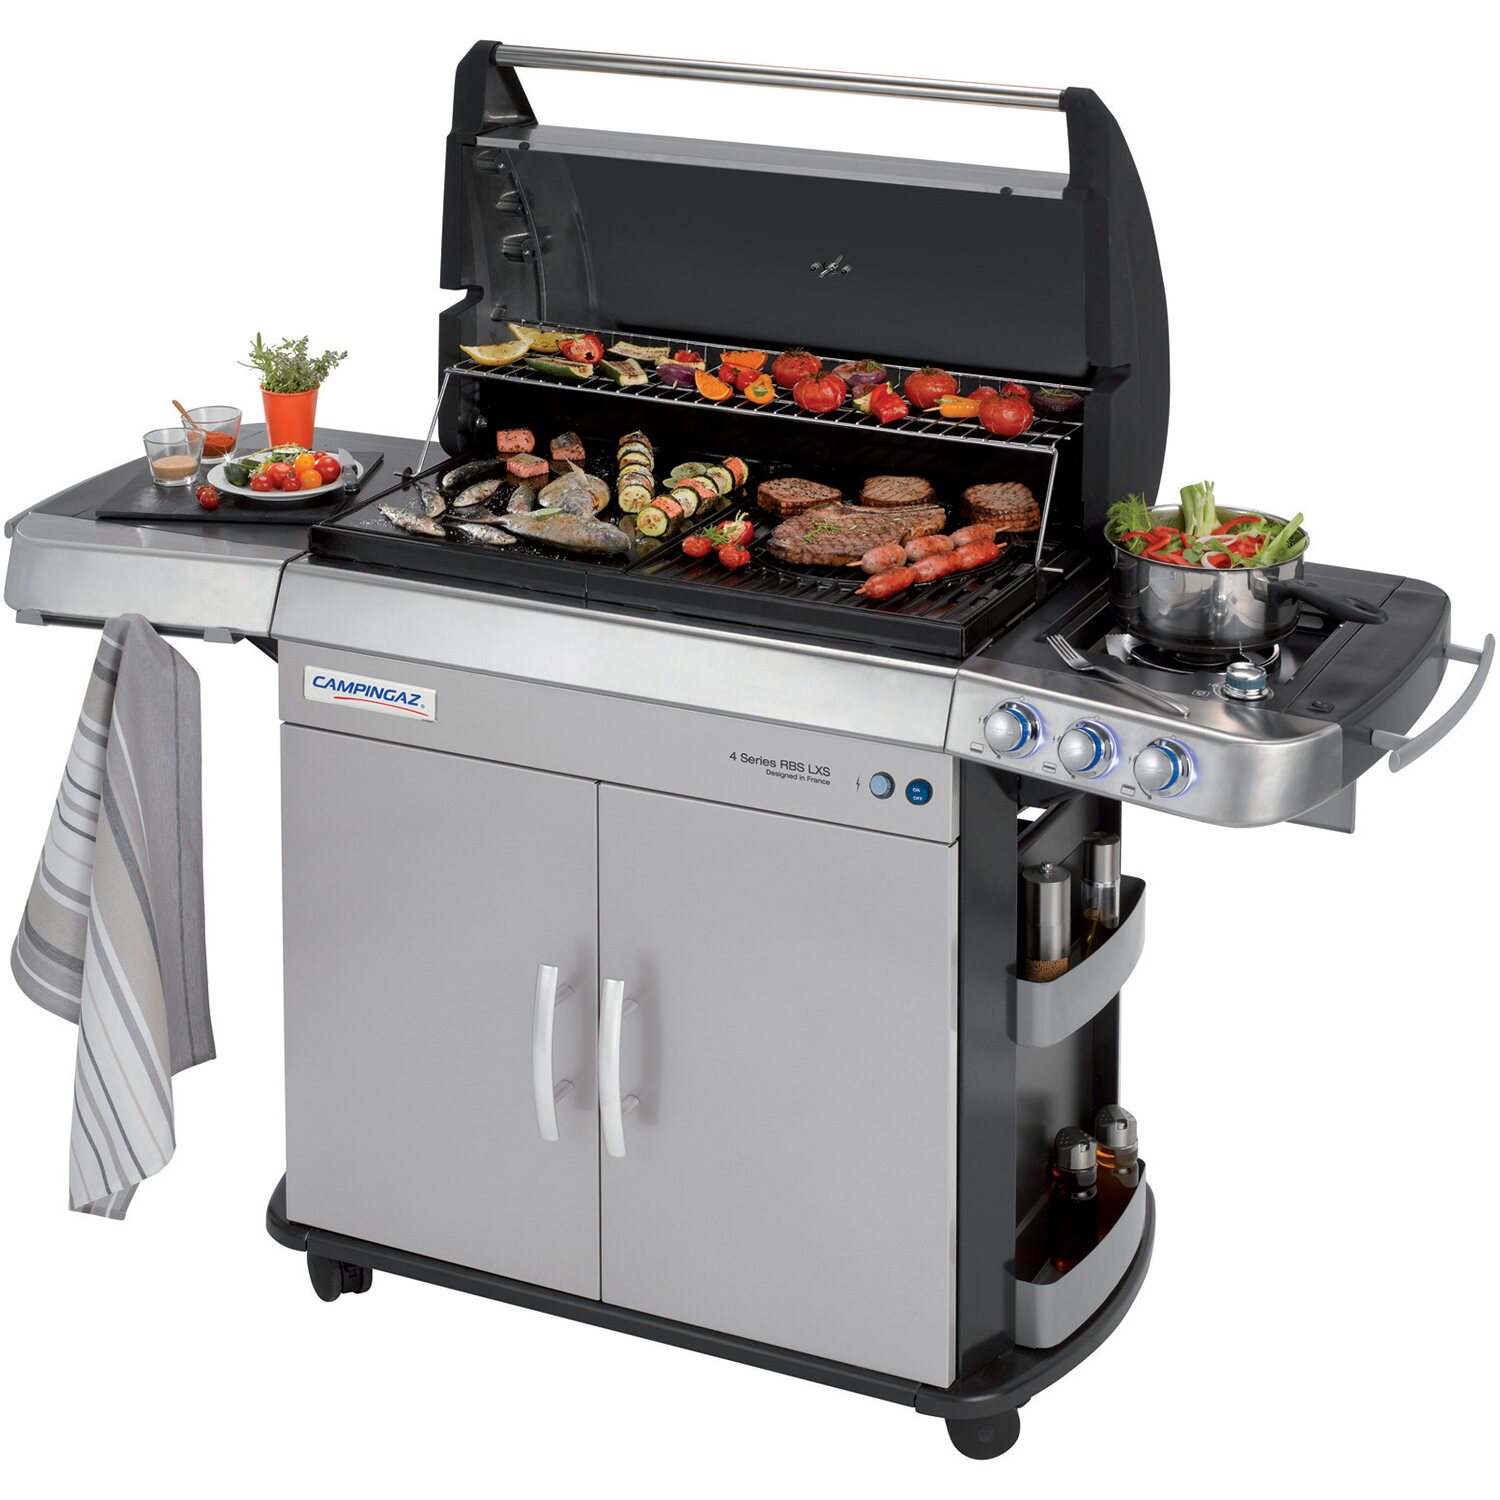 Campingaz barbecue a gas 4 series rbs lxs acquista da obi for Obi barbecue